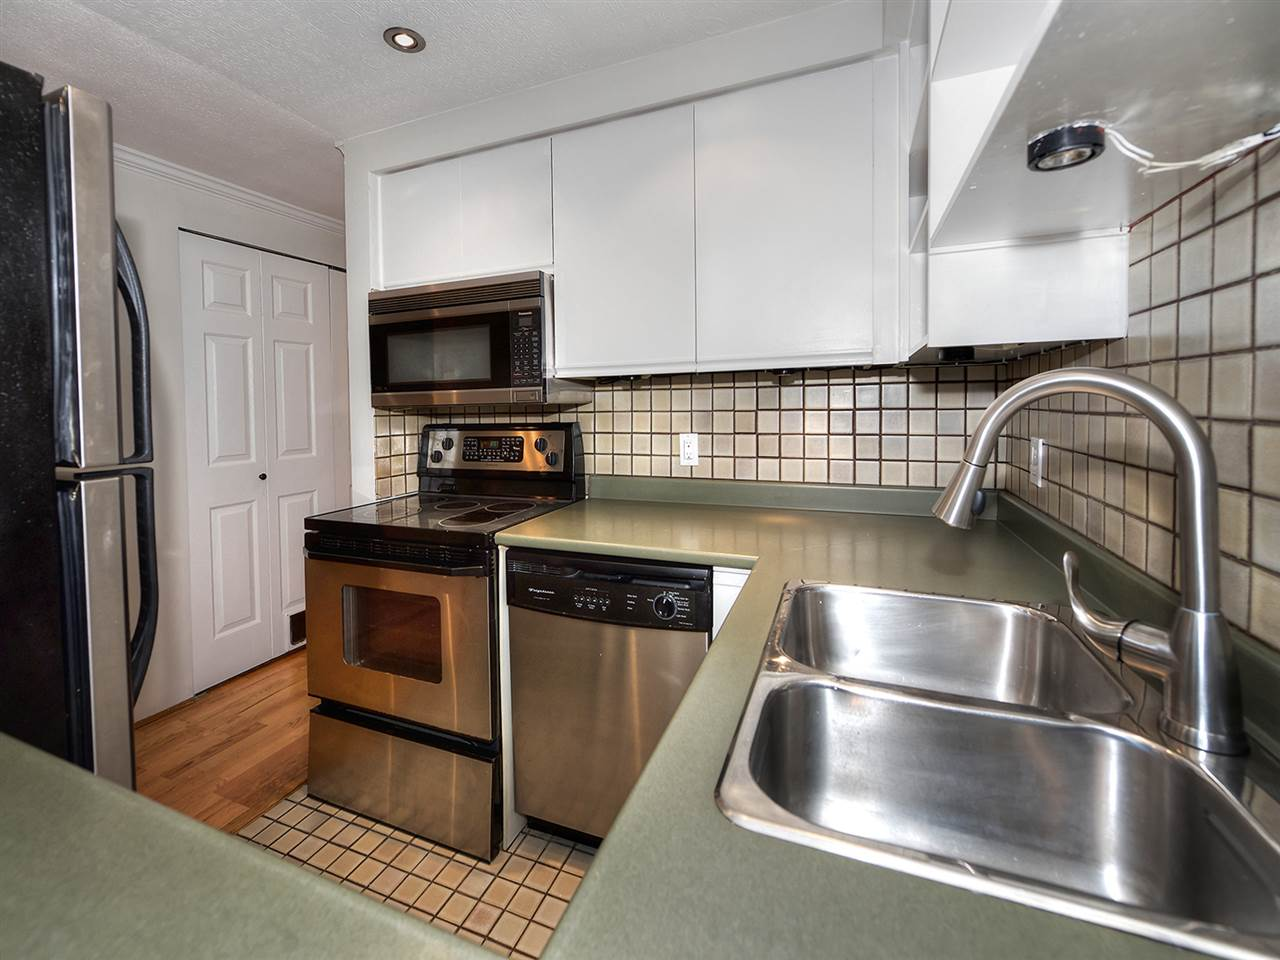 "Photo 3: 1272 W 7TH Avenue in Vancouver: Fairview VW Townhouse for sale in ""Seventh Heaven"" (Vancouver West)  : MLS® # R2204233"